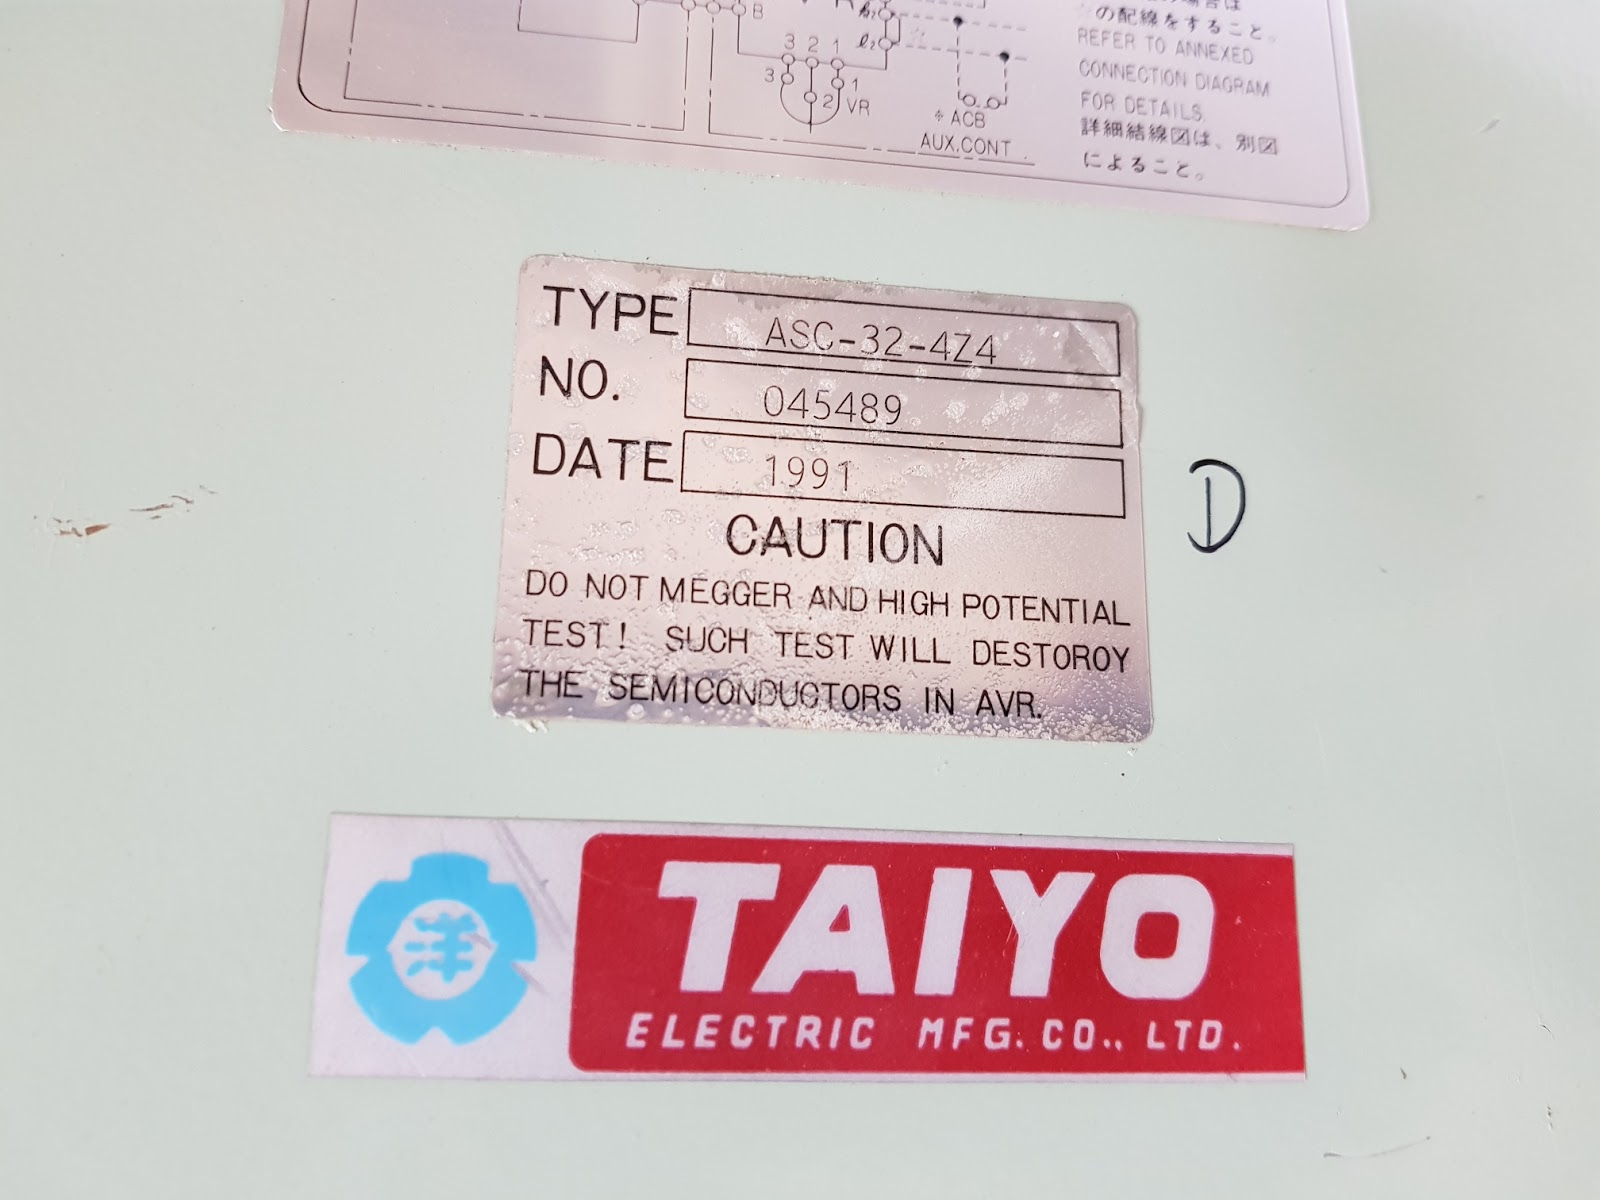 medium resolution of taiyo automatic voltage regulator asc 32 4z4 type asc 32 4z4 serial no 045489 date 1998 1991 1996 mfg by taiyo electric co ltd